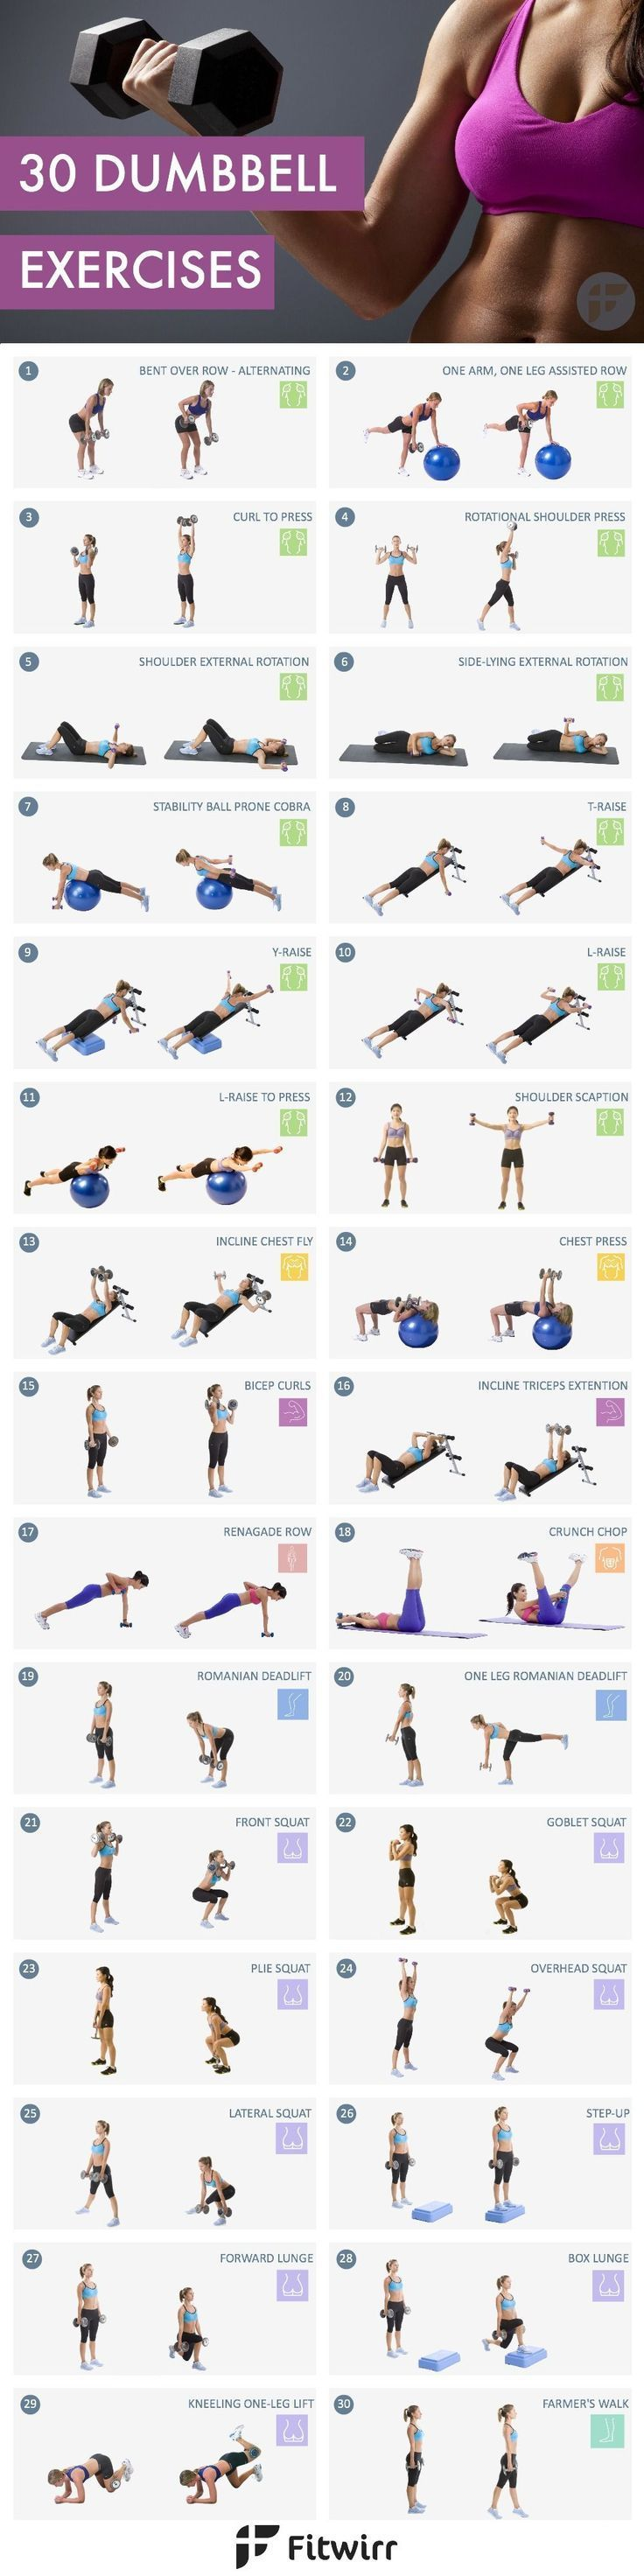 30 Best Dumbbell Exercises for at Home Workouts #dumbbellexercises